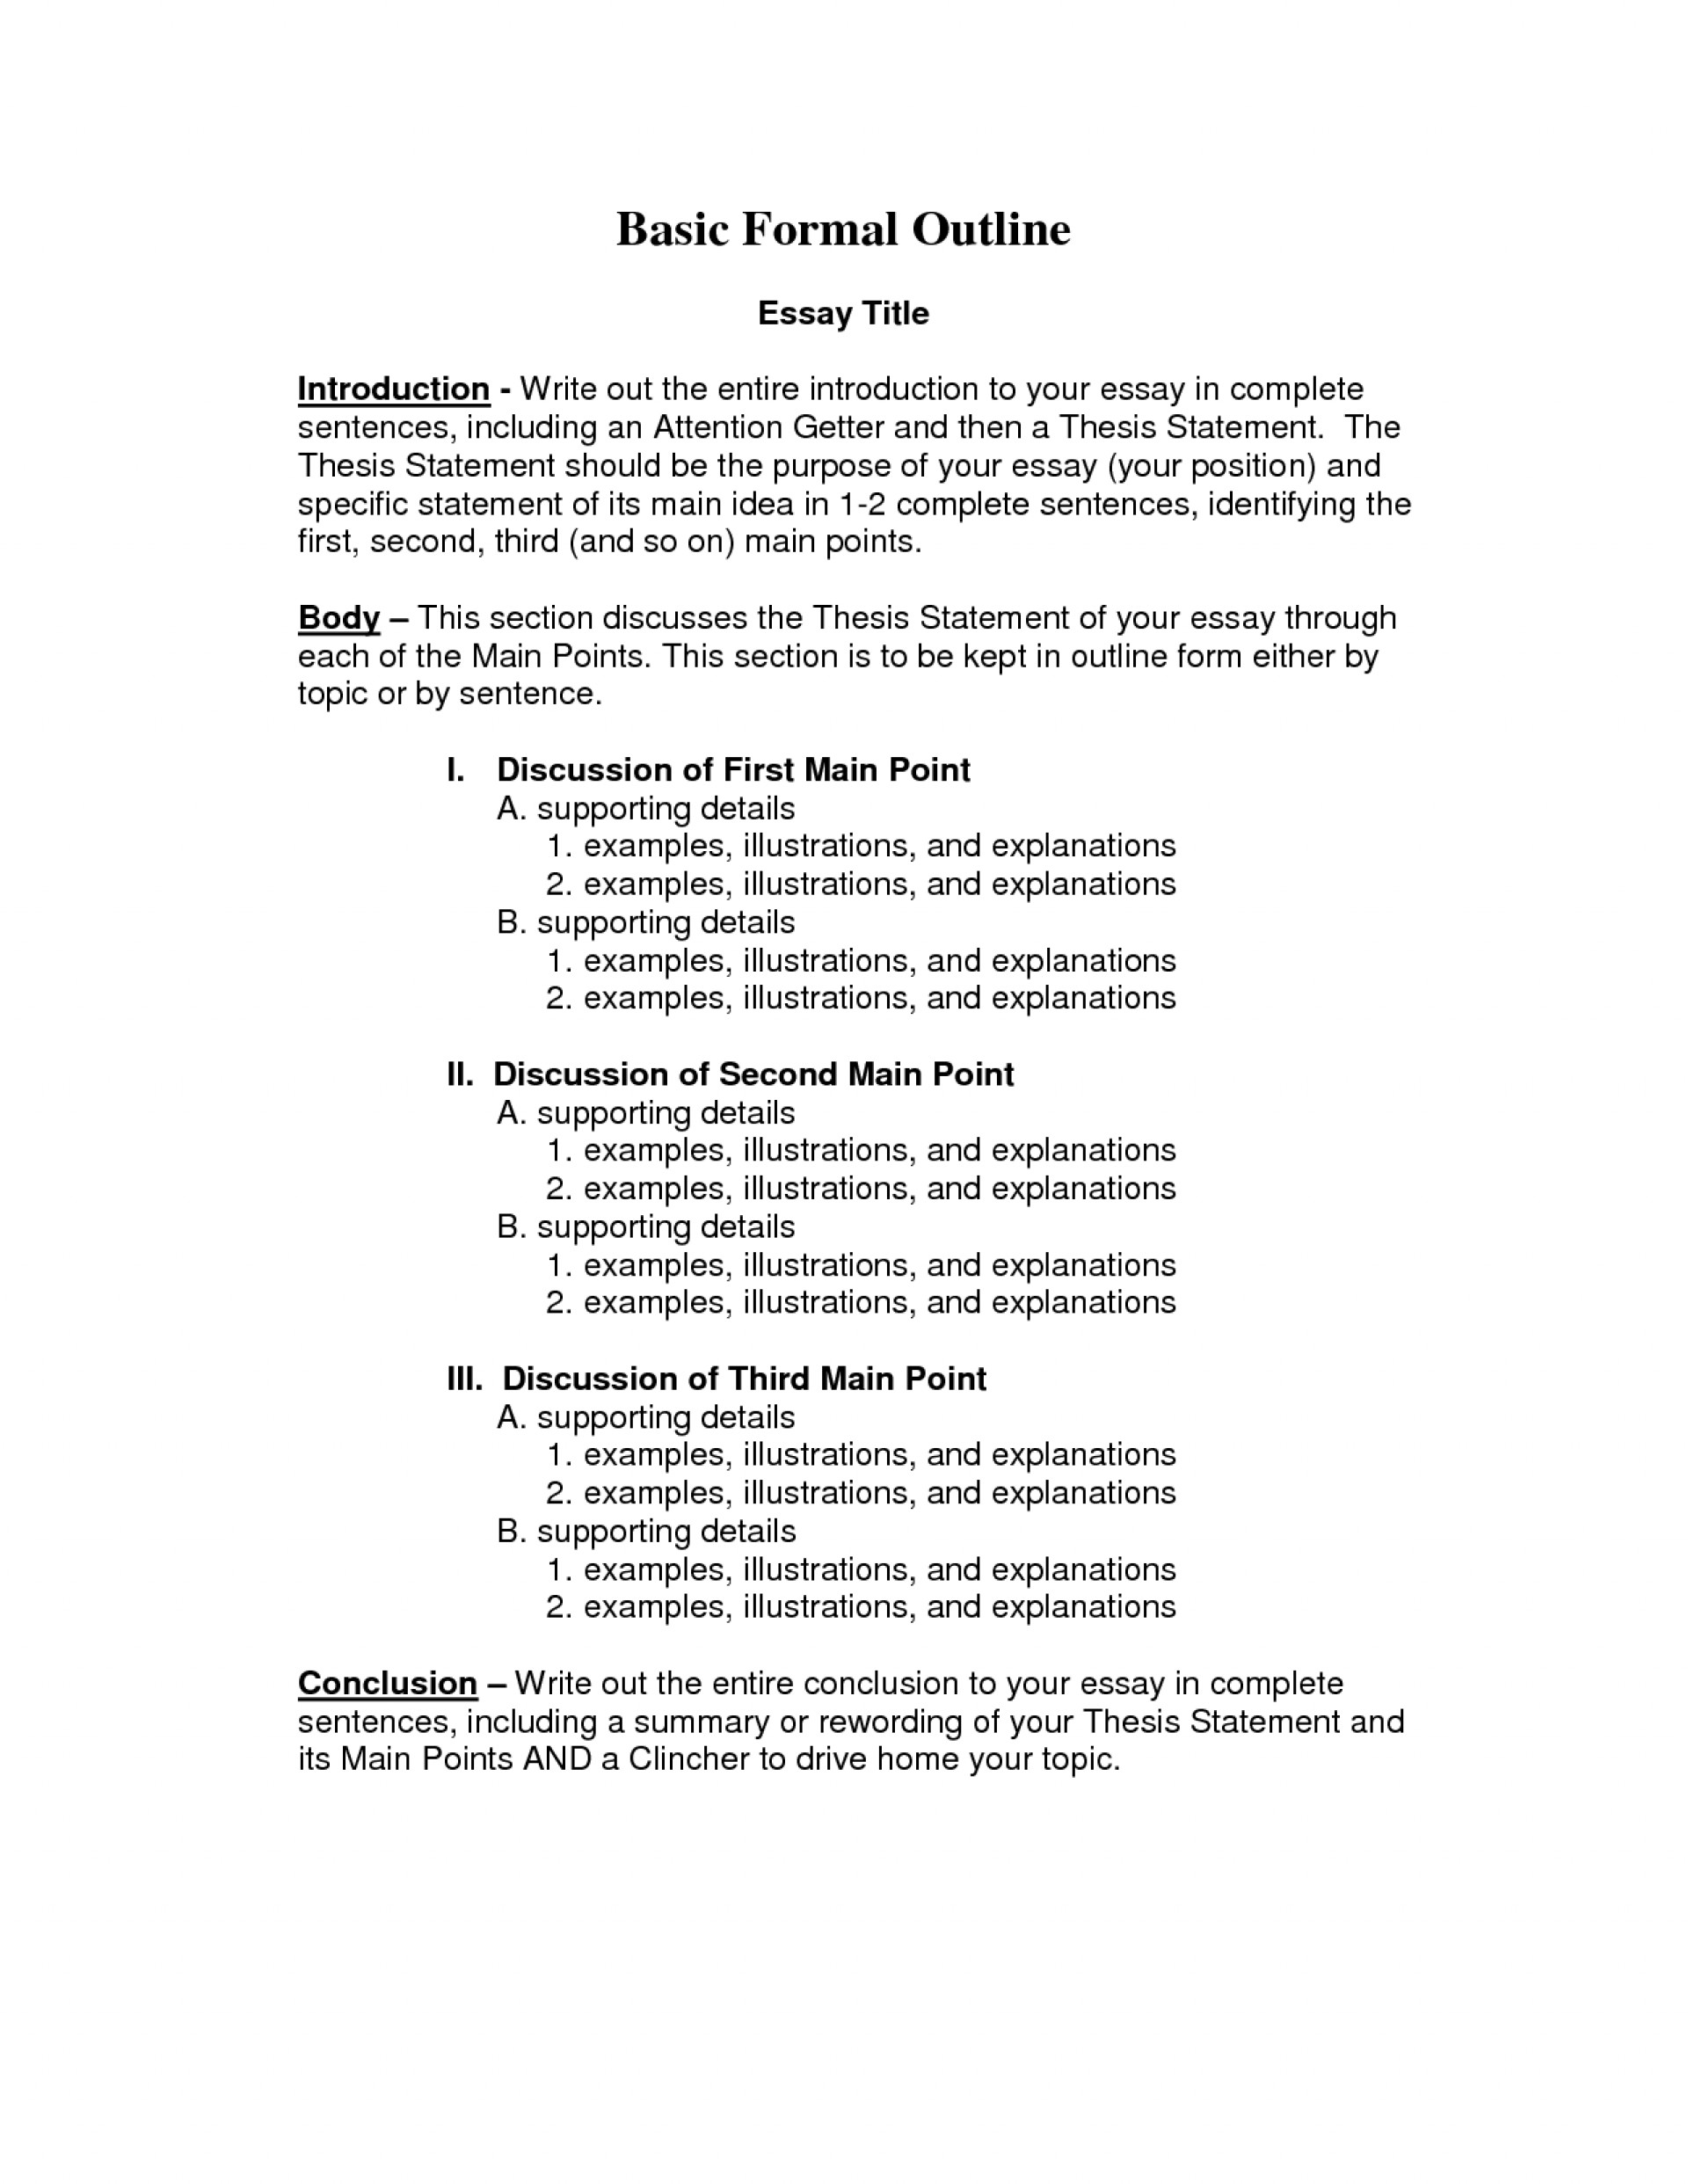 009 Essay Example Apply Texas Examples Formal Introduction Format Researchaper Help Tkpaperpbgo Outline 4 An For College Writing With Argument Good Dreaded B A 2017 C 1920